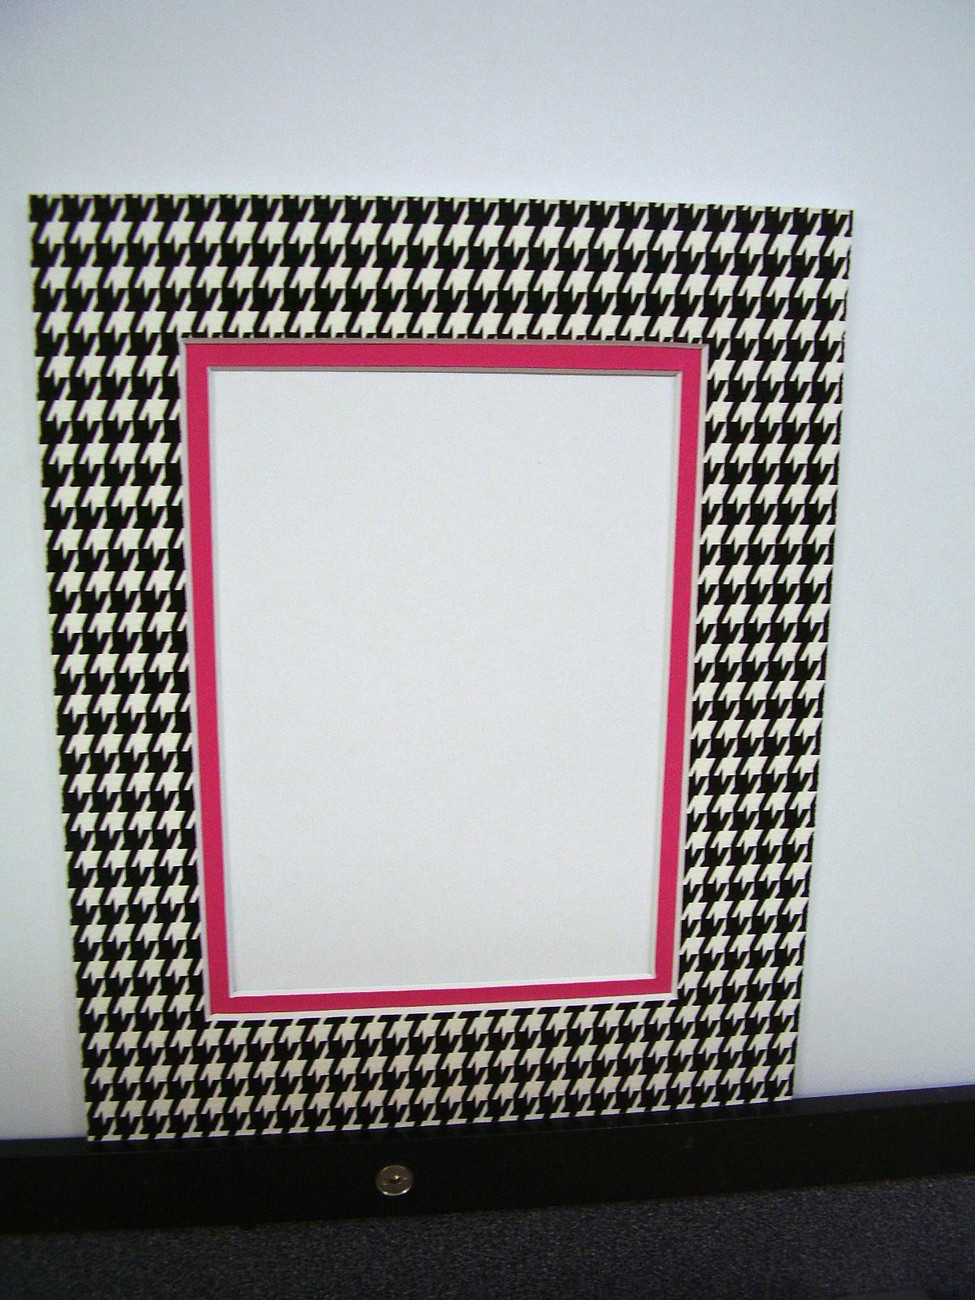 Primary image for Picture Frame Double Mat 11x14 for 8x10 photo Houndstooth Black White Hot Pink